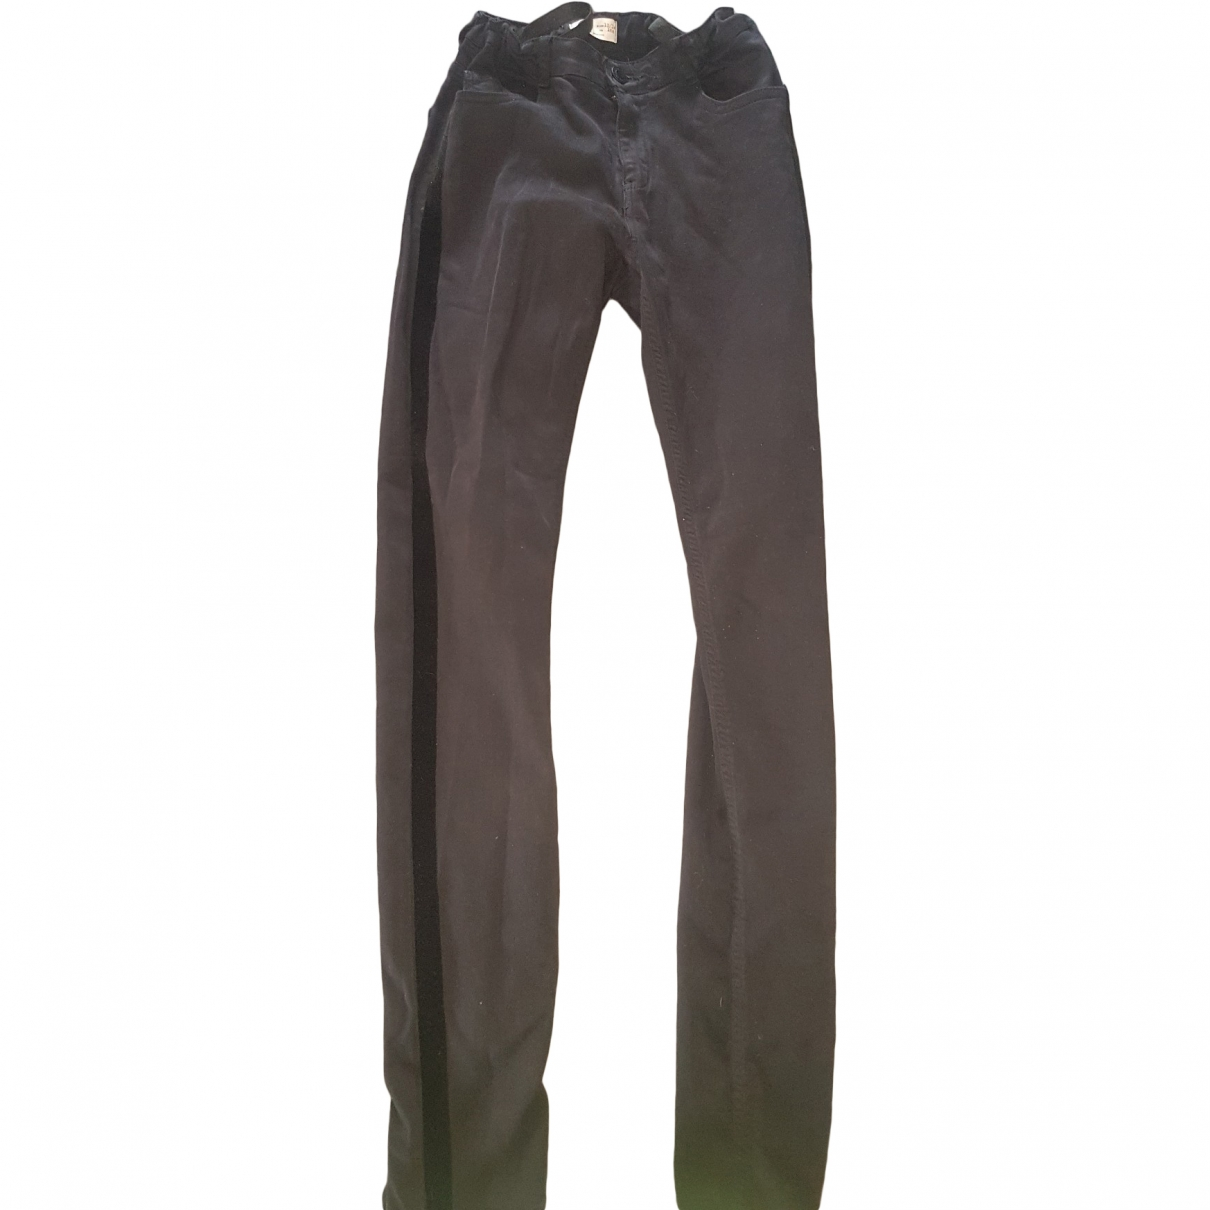 Zara \N Black Cotton Trousers for Kids 14 years - S FR